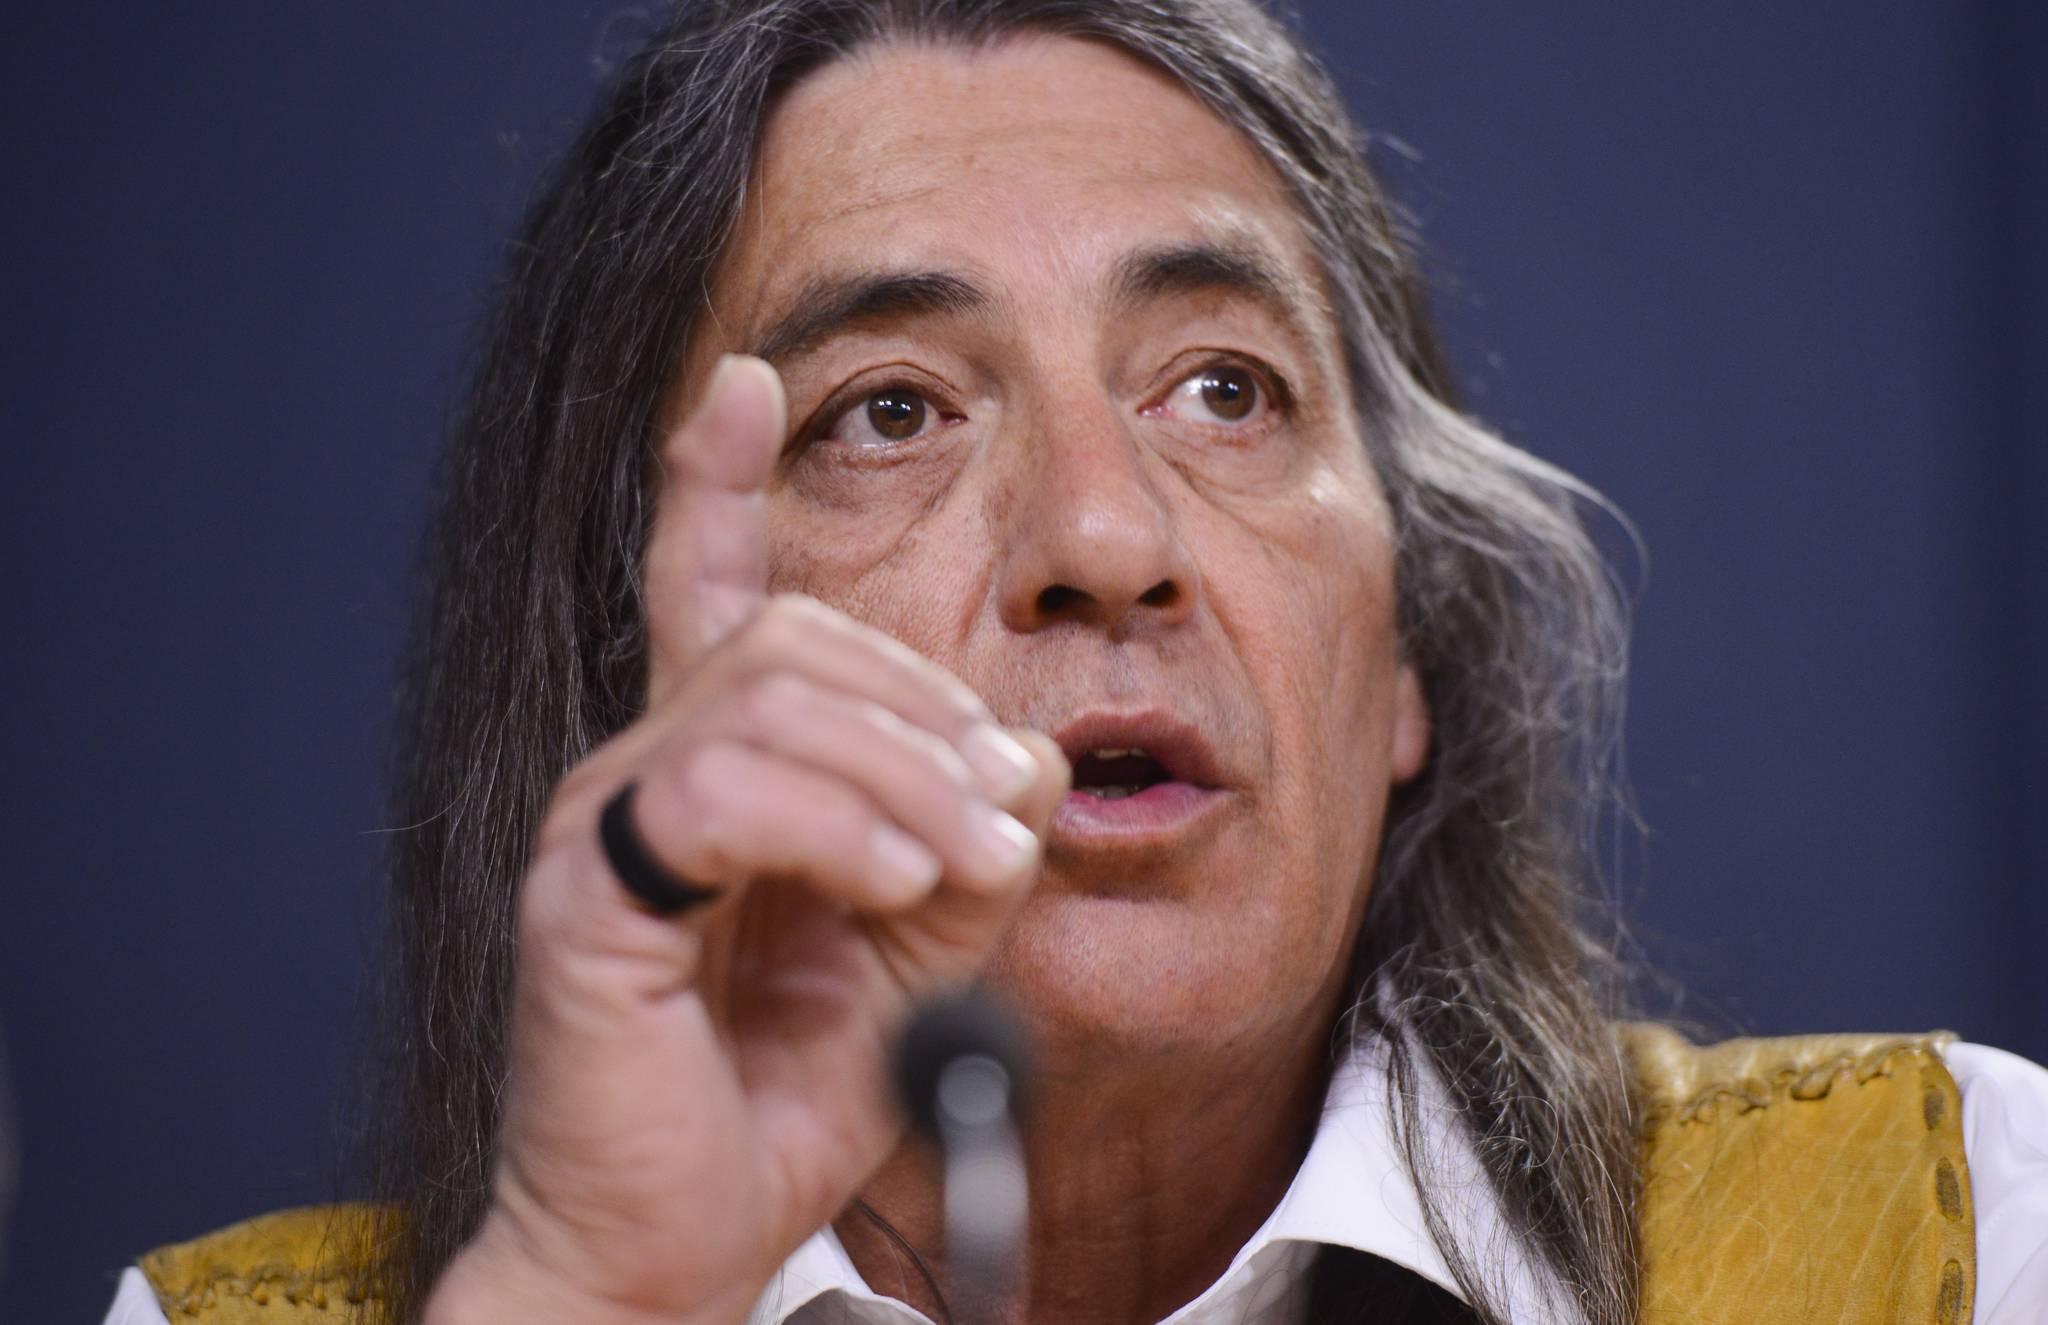 Mohawk Council of Kanesatake Grand Chief Serge Otsi Simon discusses the current situation and actions relating to the Wet'suwet'en hereditary chiefs during a press conference at the National Press Theatre in Ottawa on Tuesday, Feb. 18, 2020. THE CANADIAN PRESS/Sean Kilpatrick